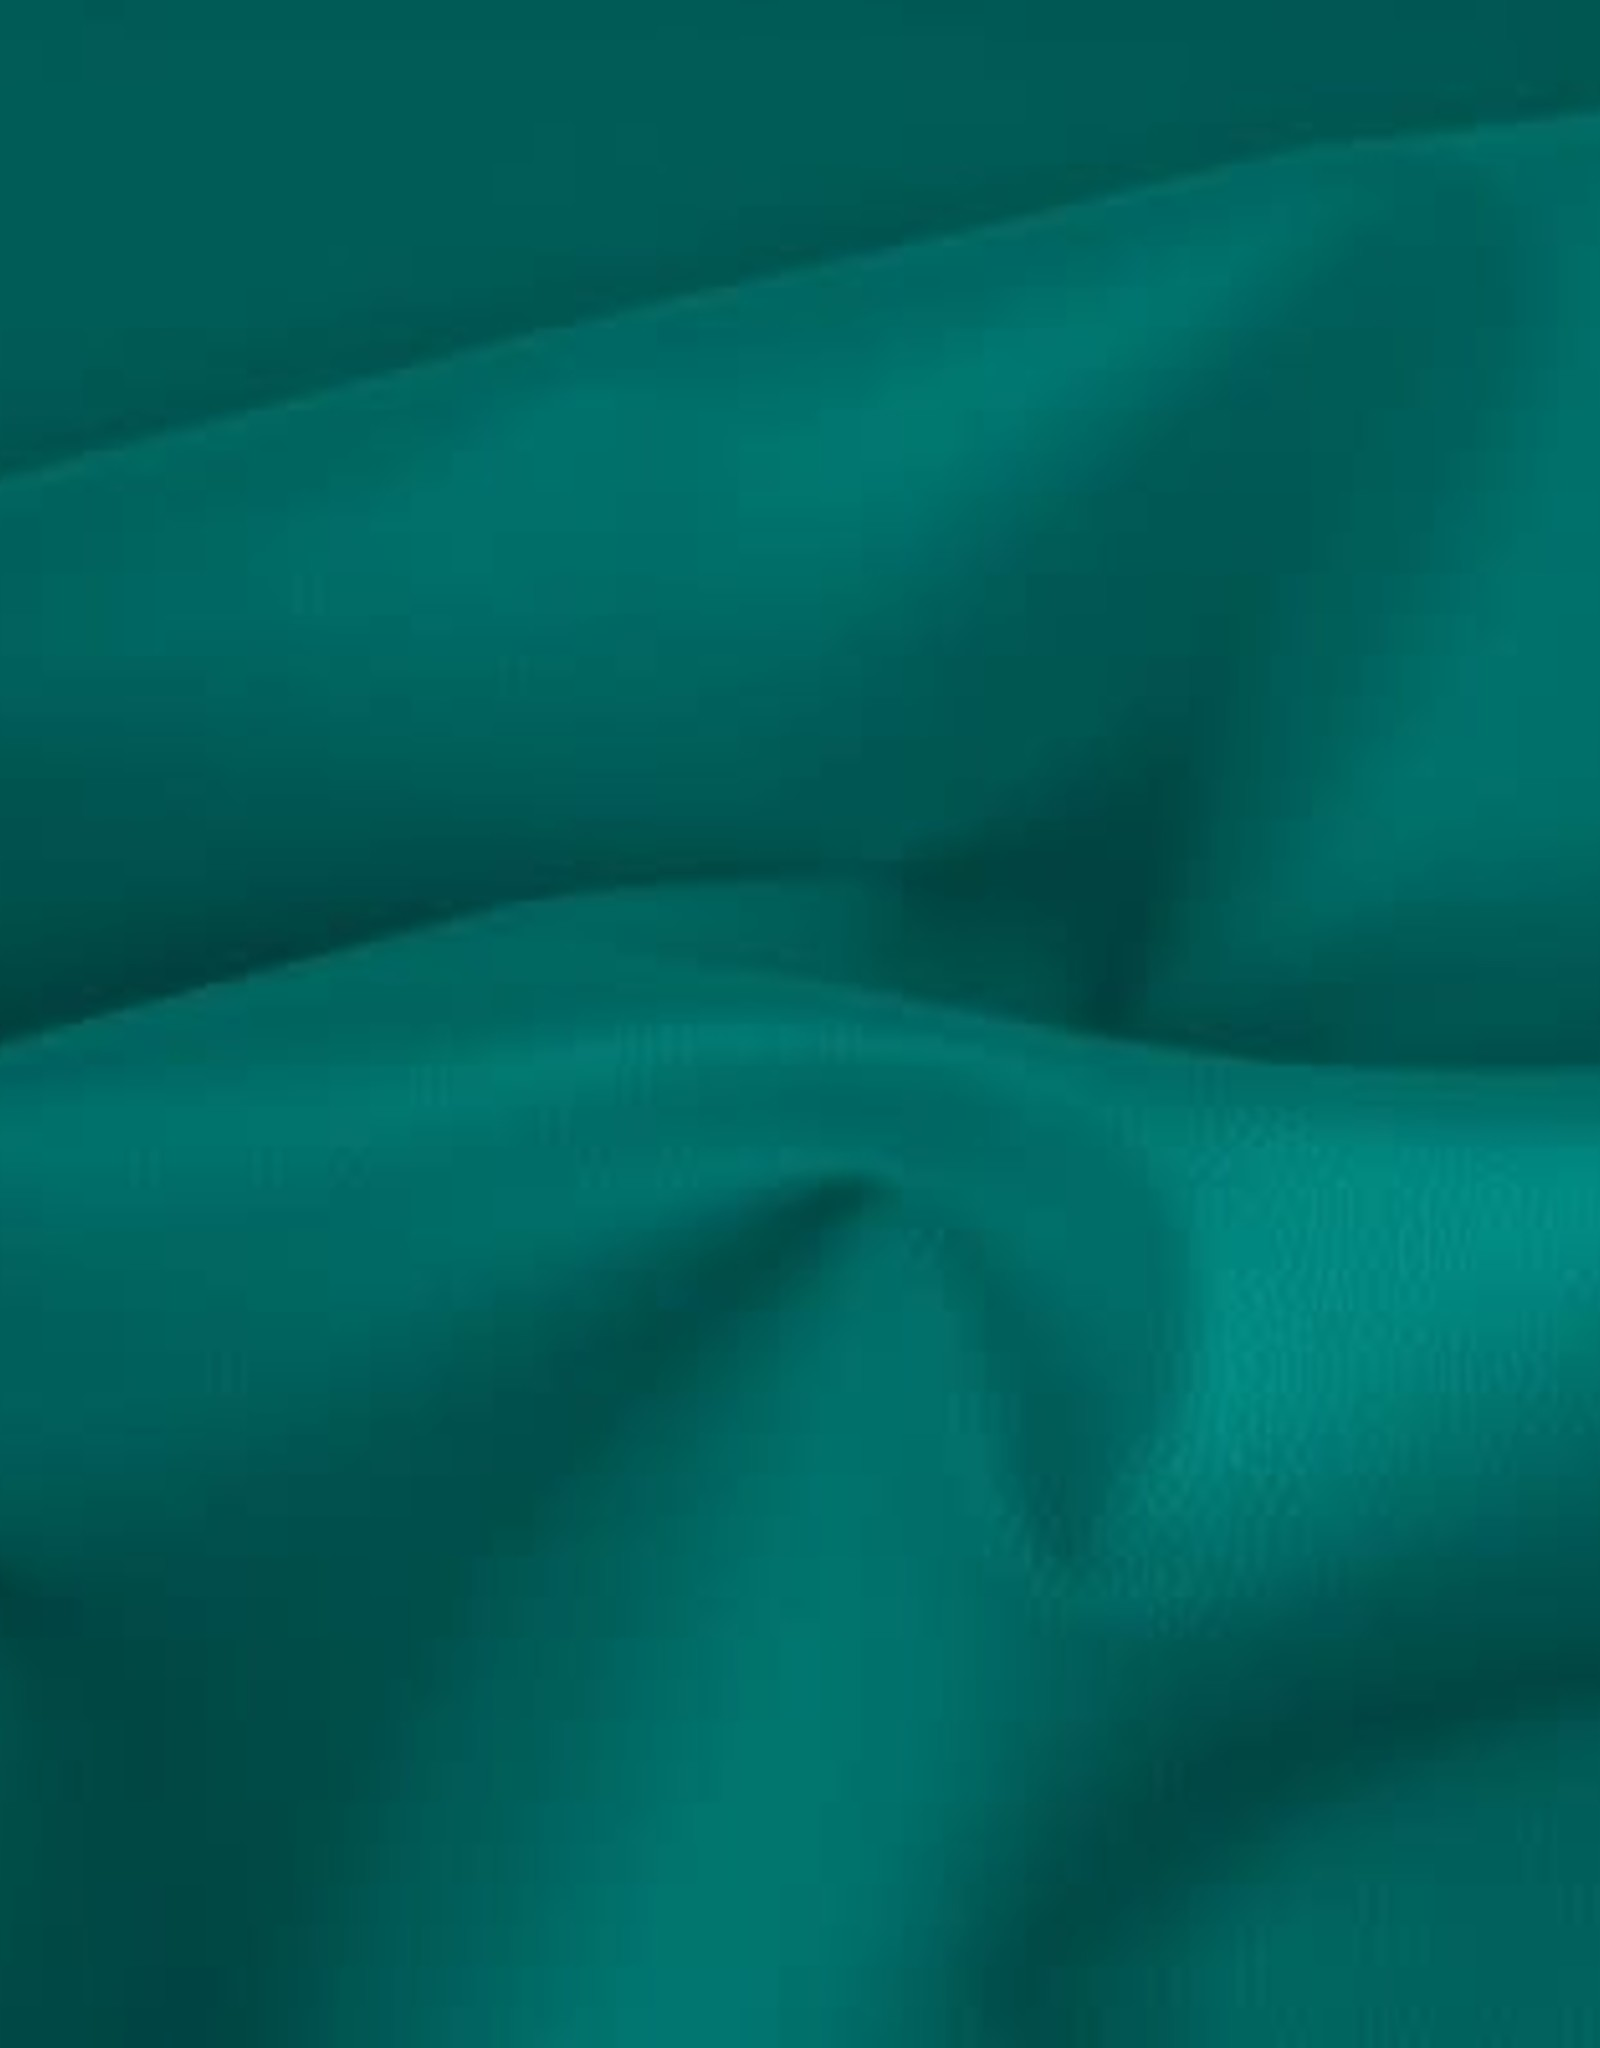 Faux leather teal